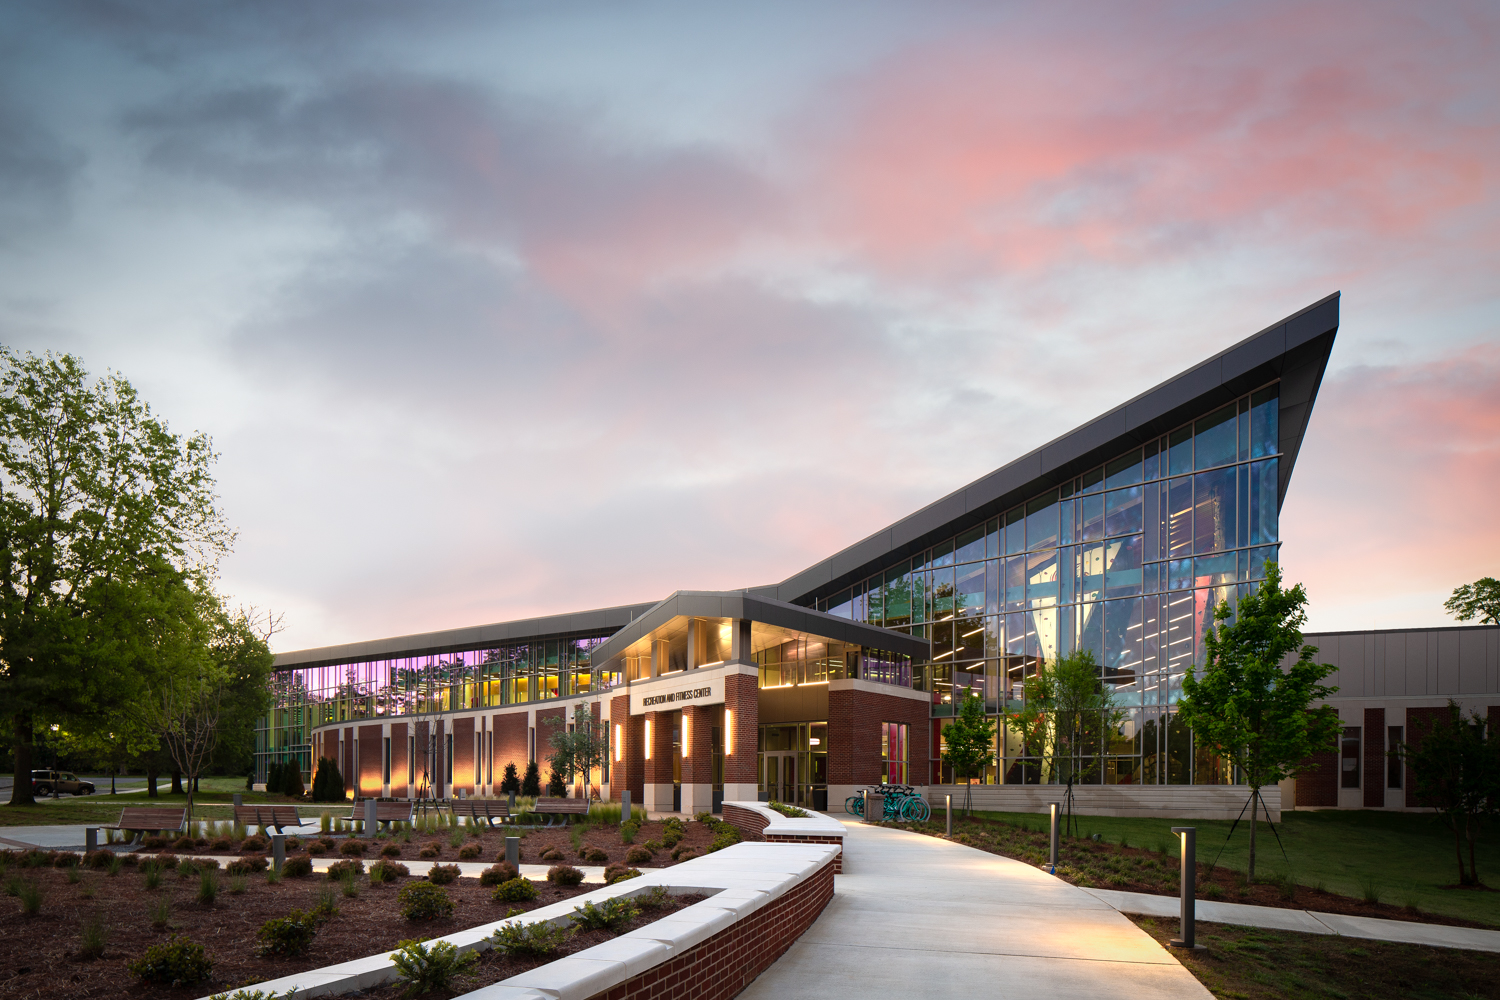 Jacksonville State Fitness Center - New commercial construction photographed for Turner Construction and Moody Nolan Architects in Jacksonville Alabama